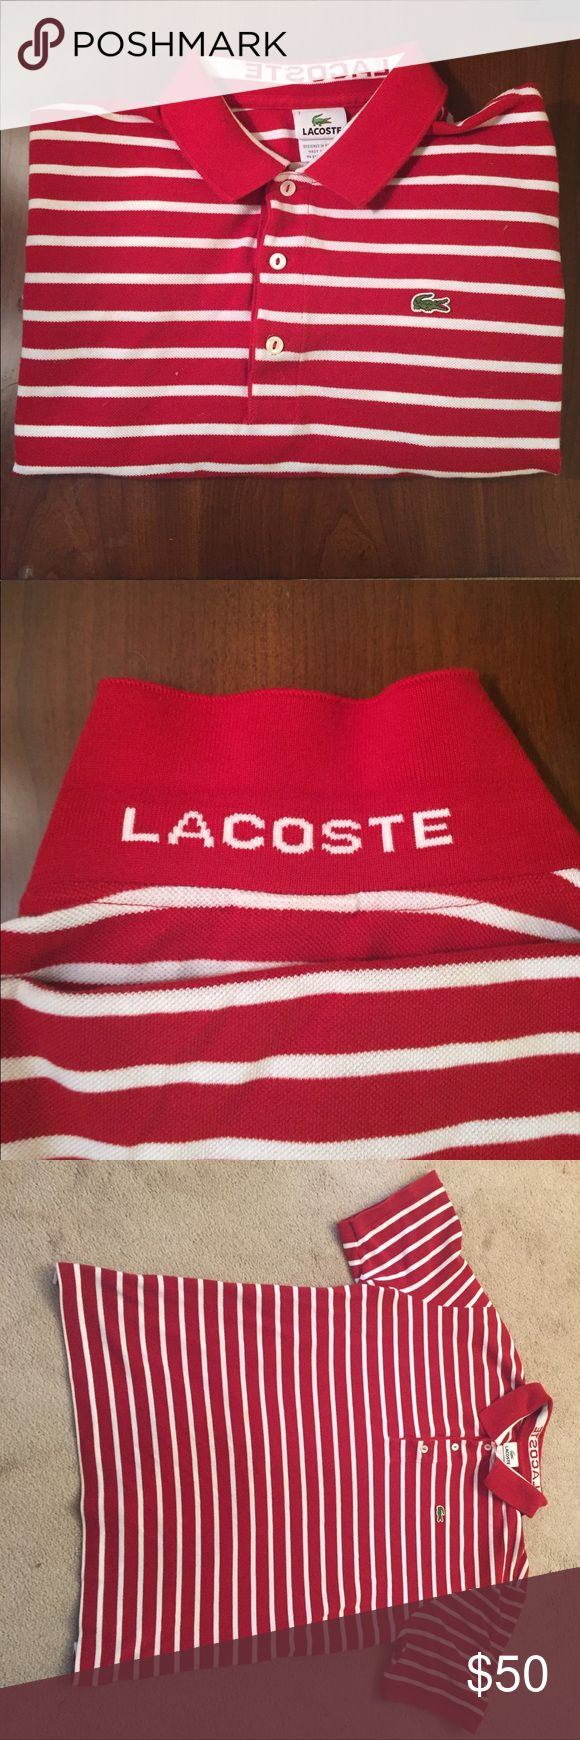 Men's Lacoste Striped Polo Shirt - L Men's Lacoste Striped Polo Shirt. Excellent condition. No rips, stains or tears. Lacoste logo on collar.  100% Cotton.  Regular Fit. Lacoste Shirts Polos